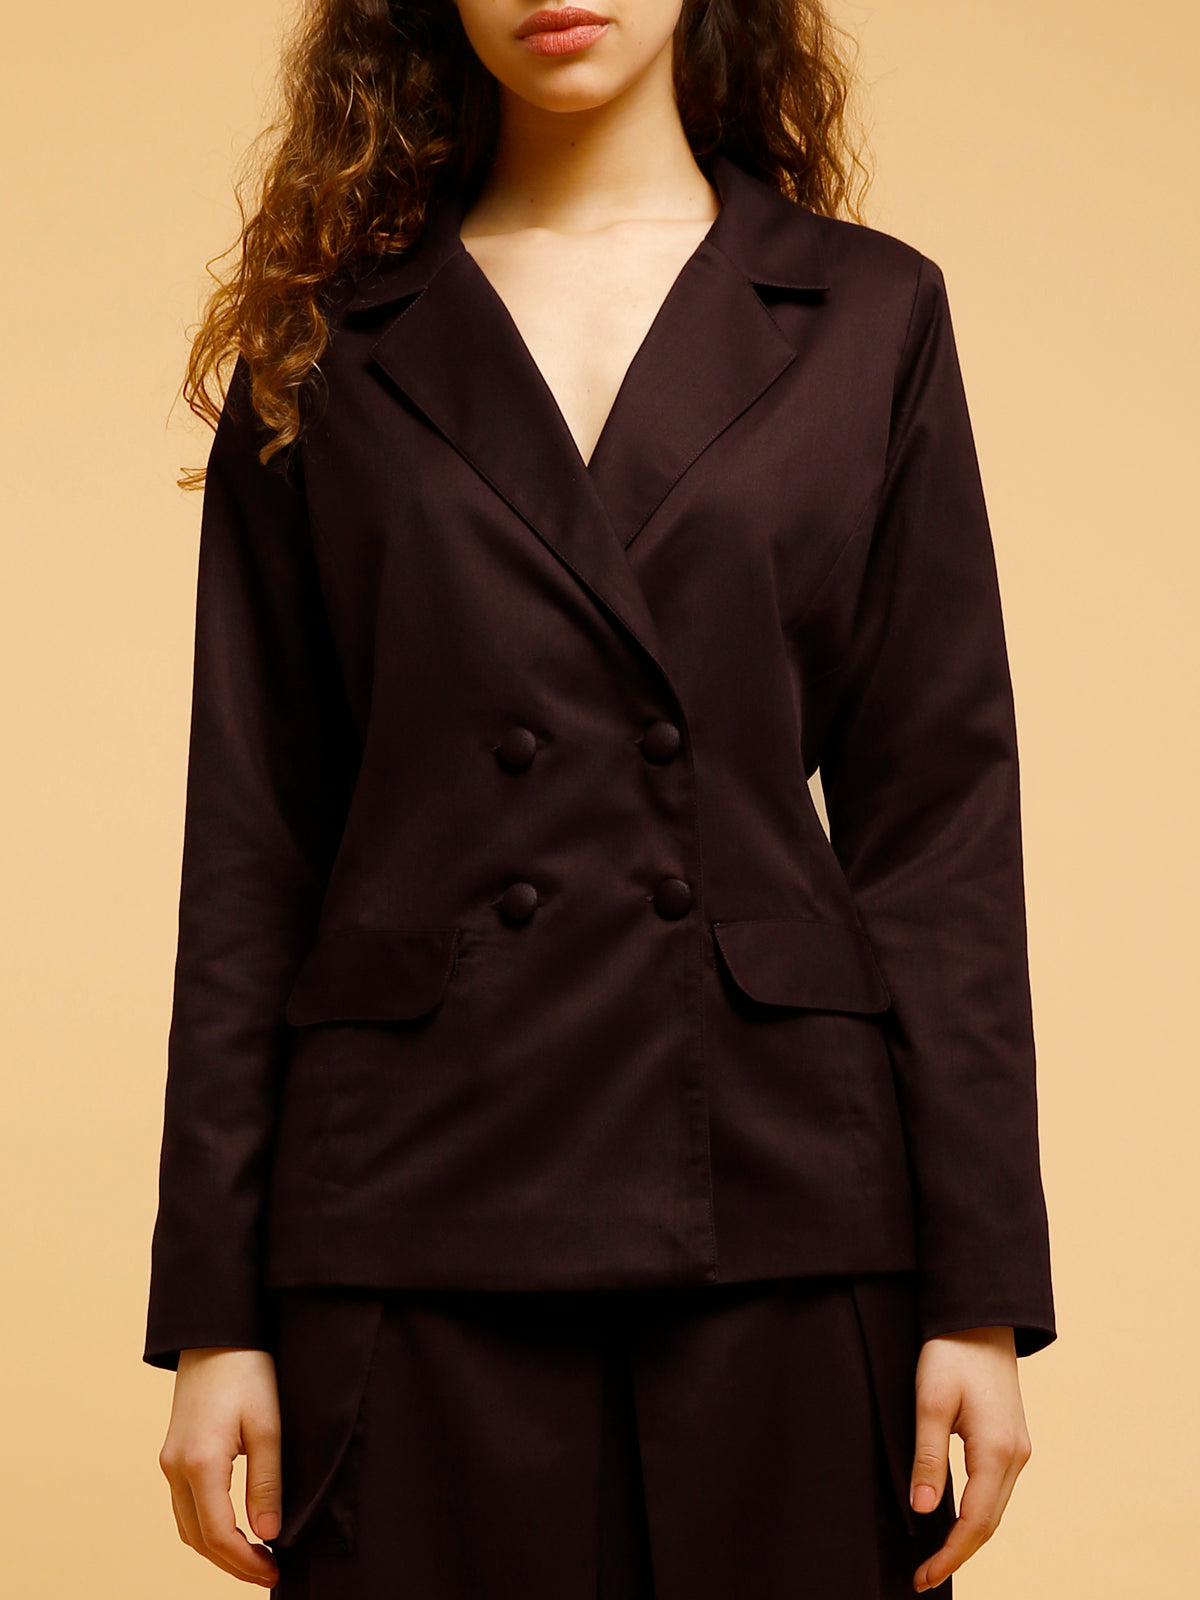 Jacket With Lapel And Buttons - Maroon